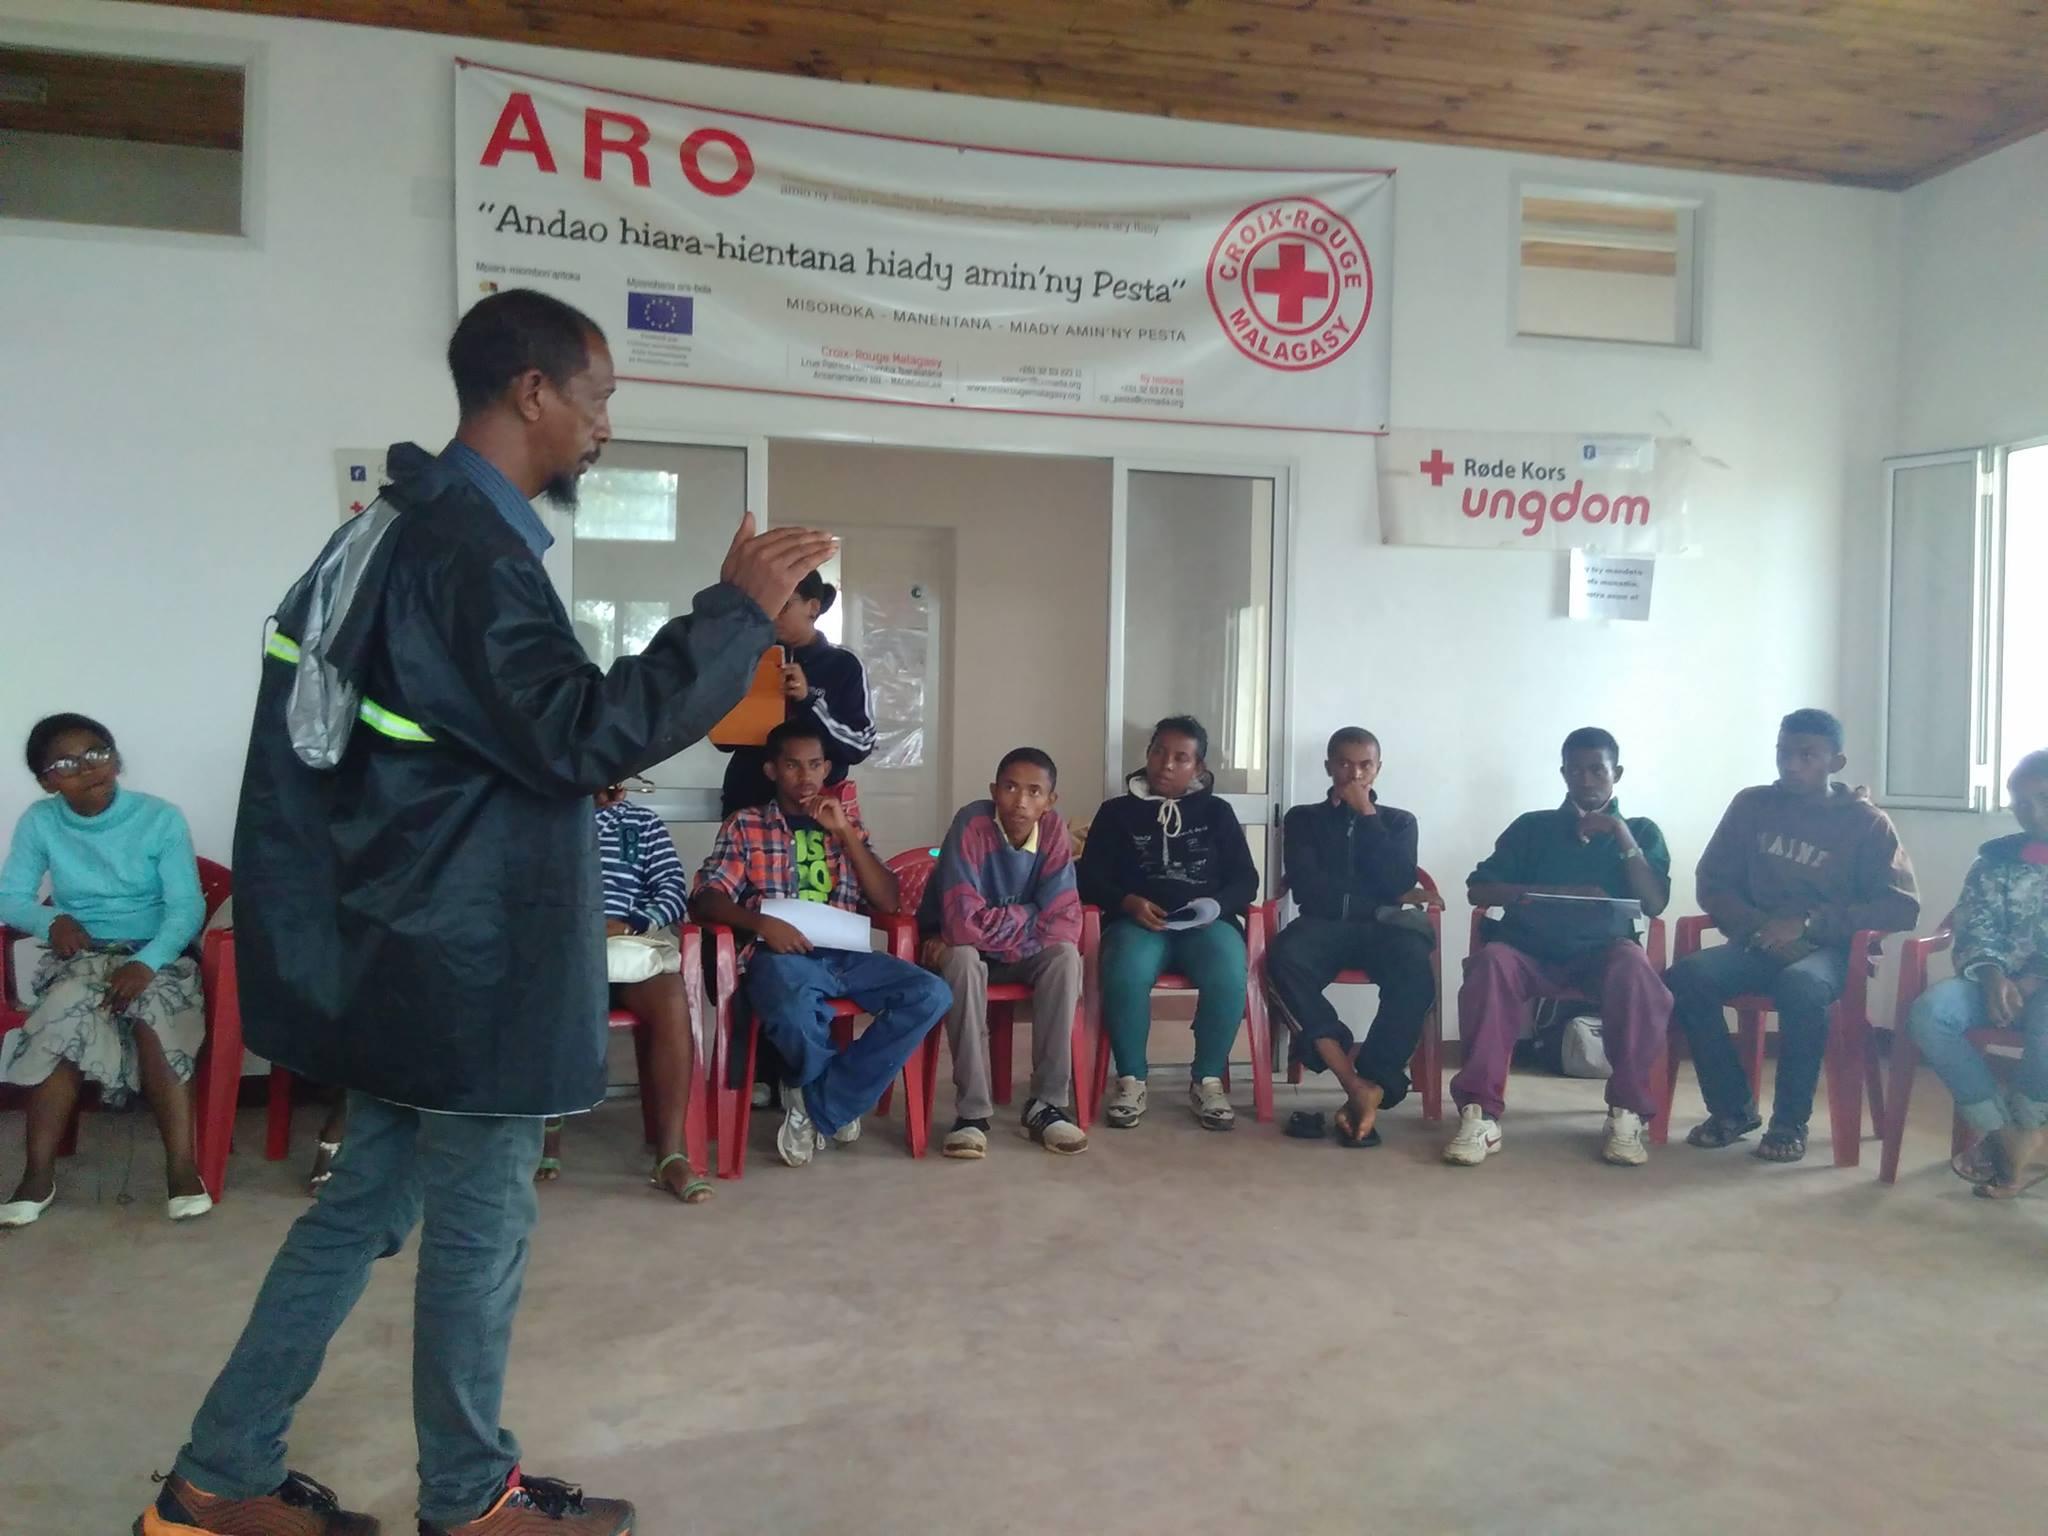 Mobilization meeting of the Red Cross volunteers in Tsiroanomandidy on risk management and potential consequences of the cyclone.  Photo credit:  Maria Ungdomsdelegat